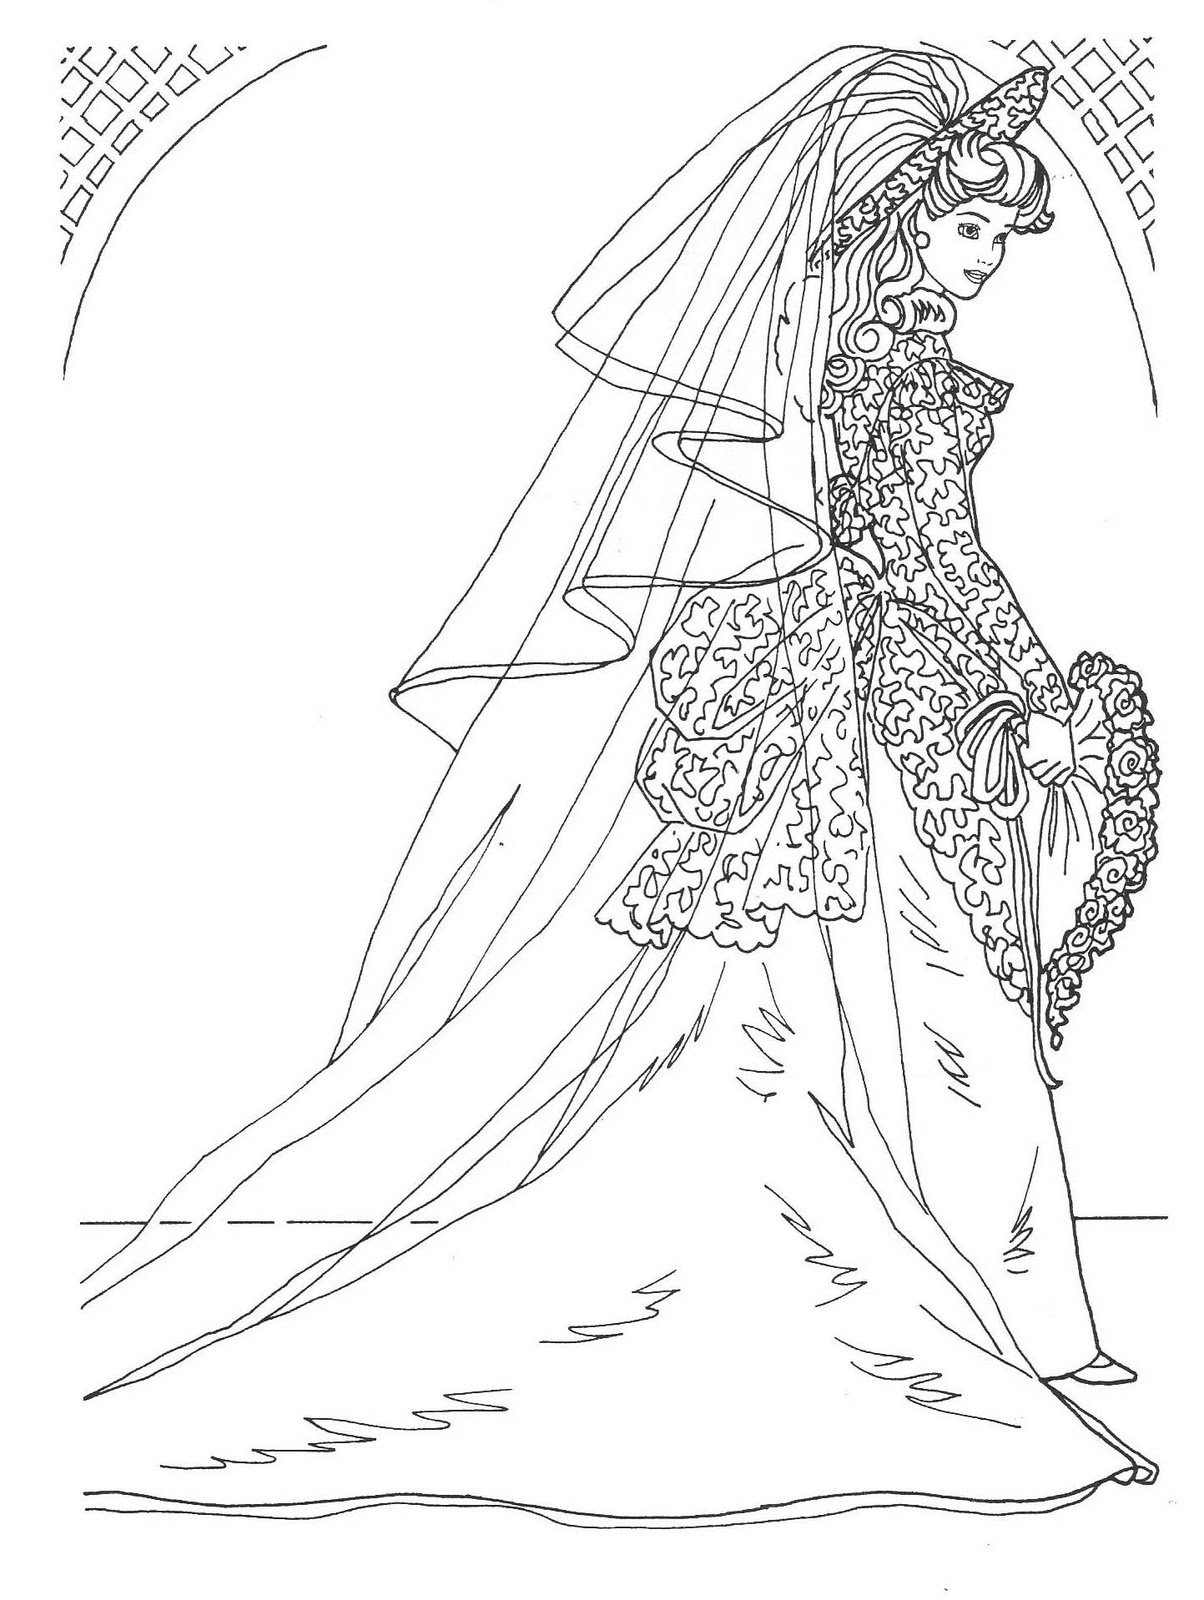 BARBIE COLORING PAGES: WEDDING DAY BARBIE IN BRIDAL GOWN